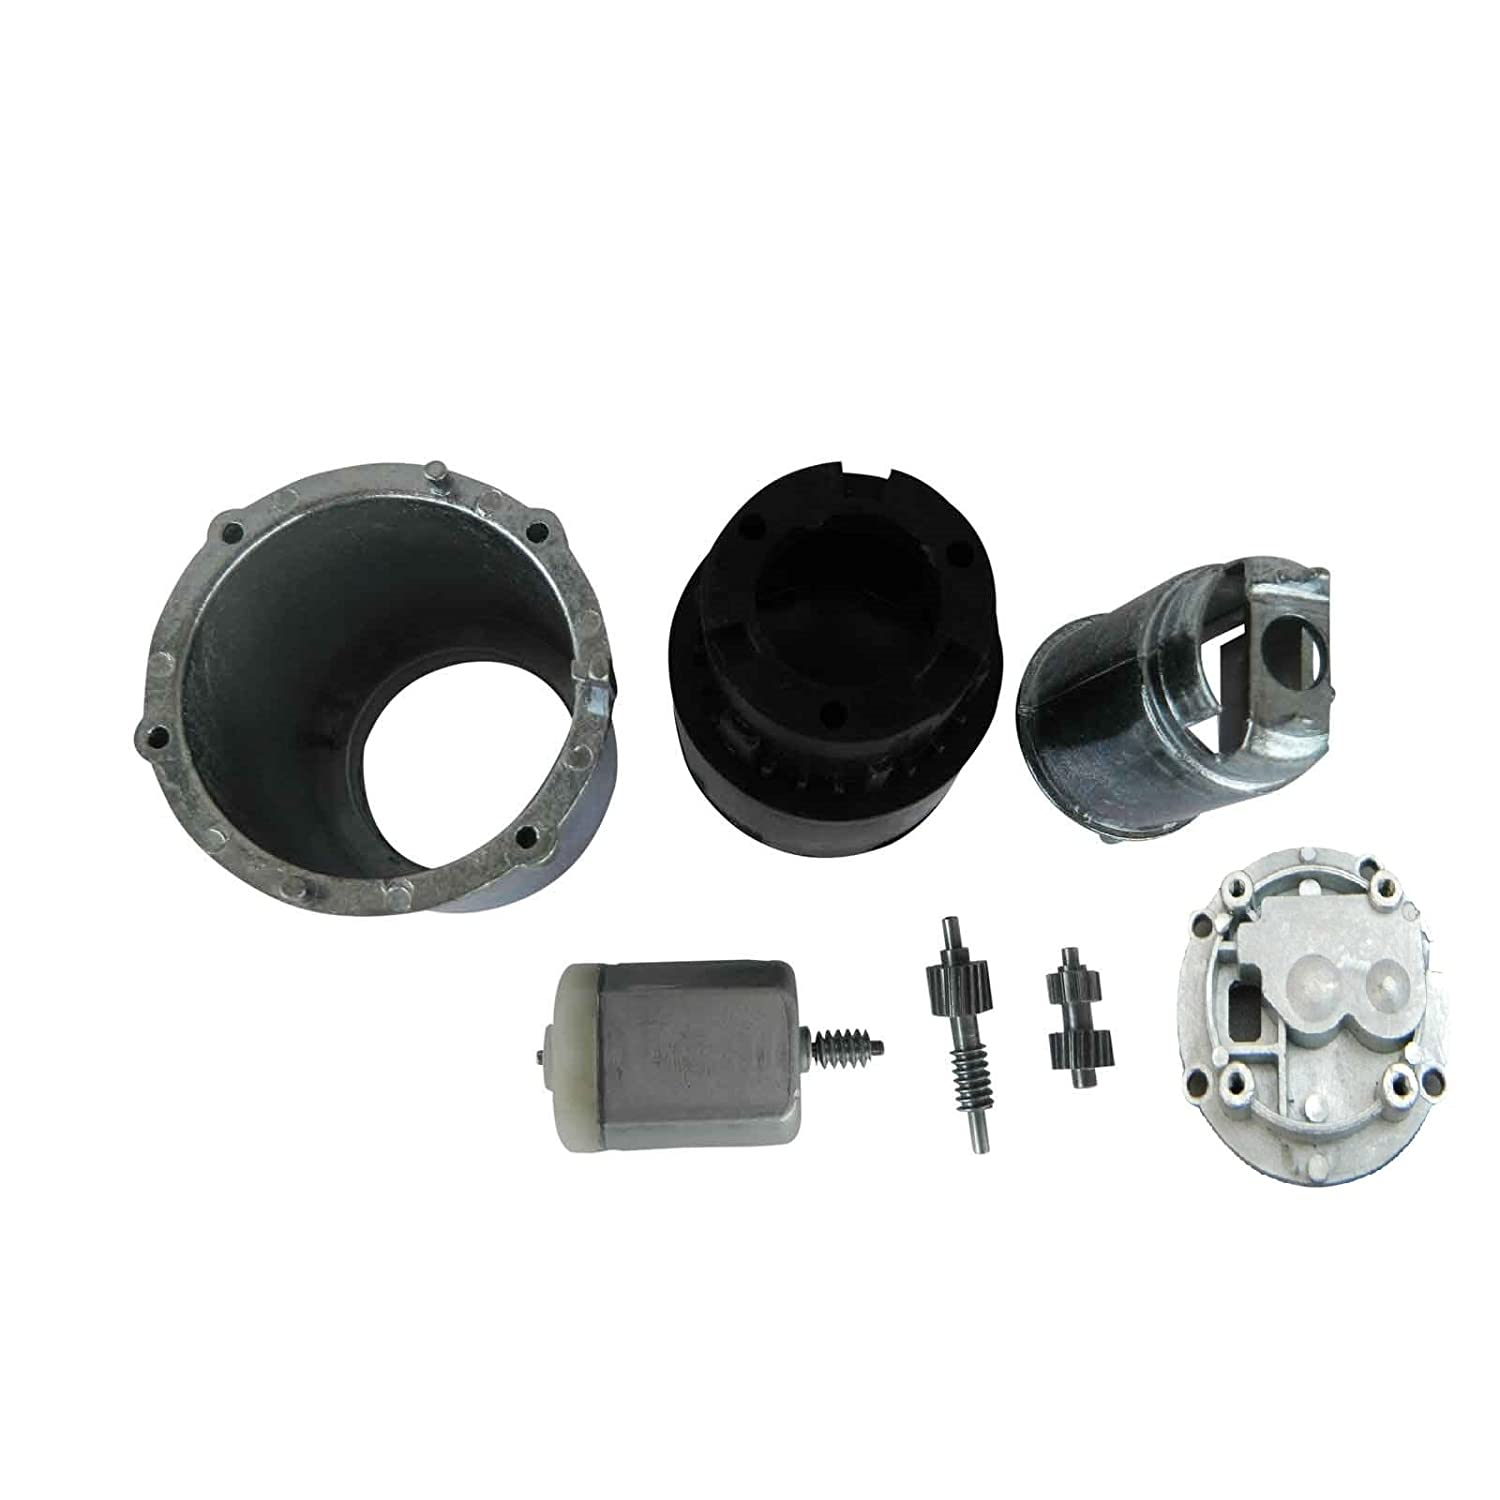 Bross BGE18+BGE500 Side Mirror Repair Motor/&Gear Set/&Cover/&Lid For BMW Chrysler Land Rover Freelander